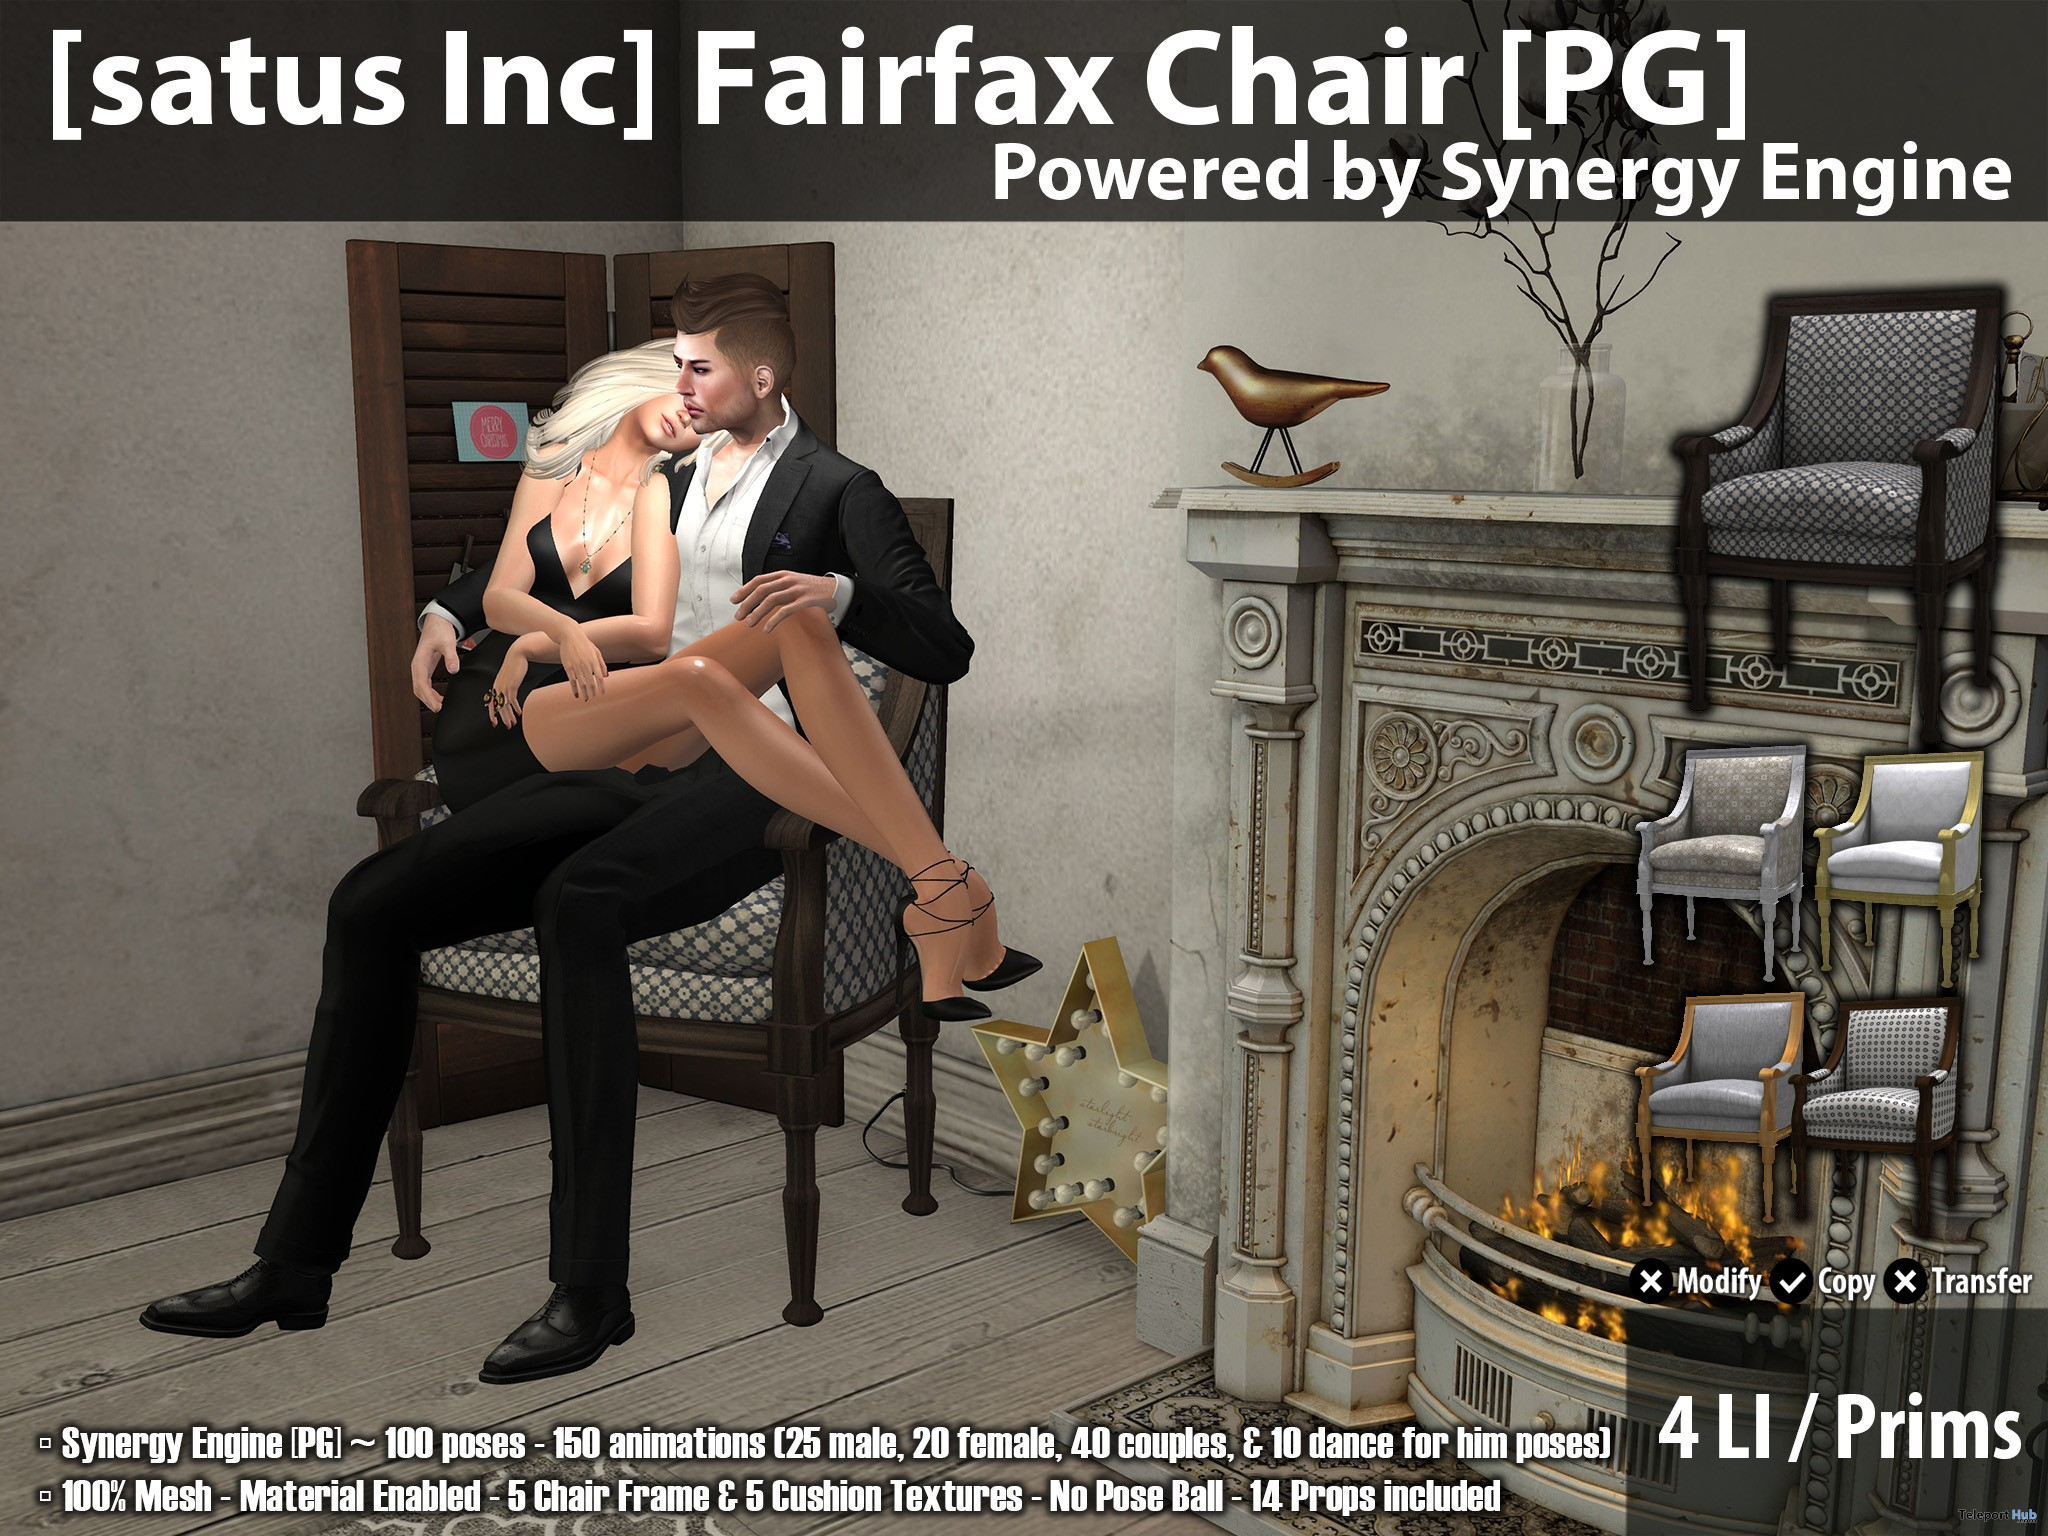 New Release: Fairfax Chair [Adult] & [PG] by [satus Inc] - Teleport Hub - teleporthub.com